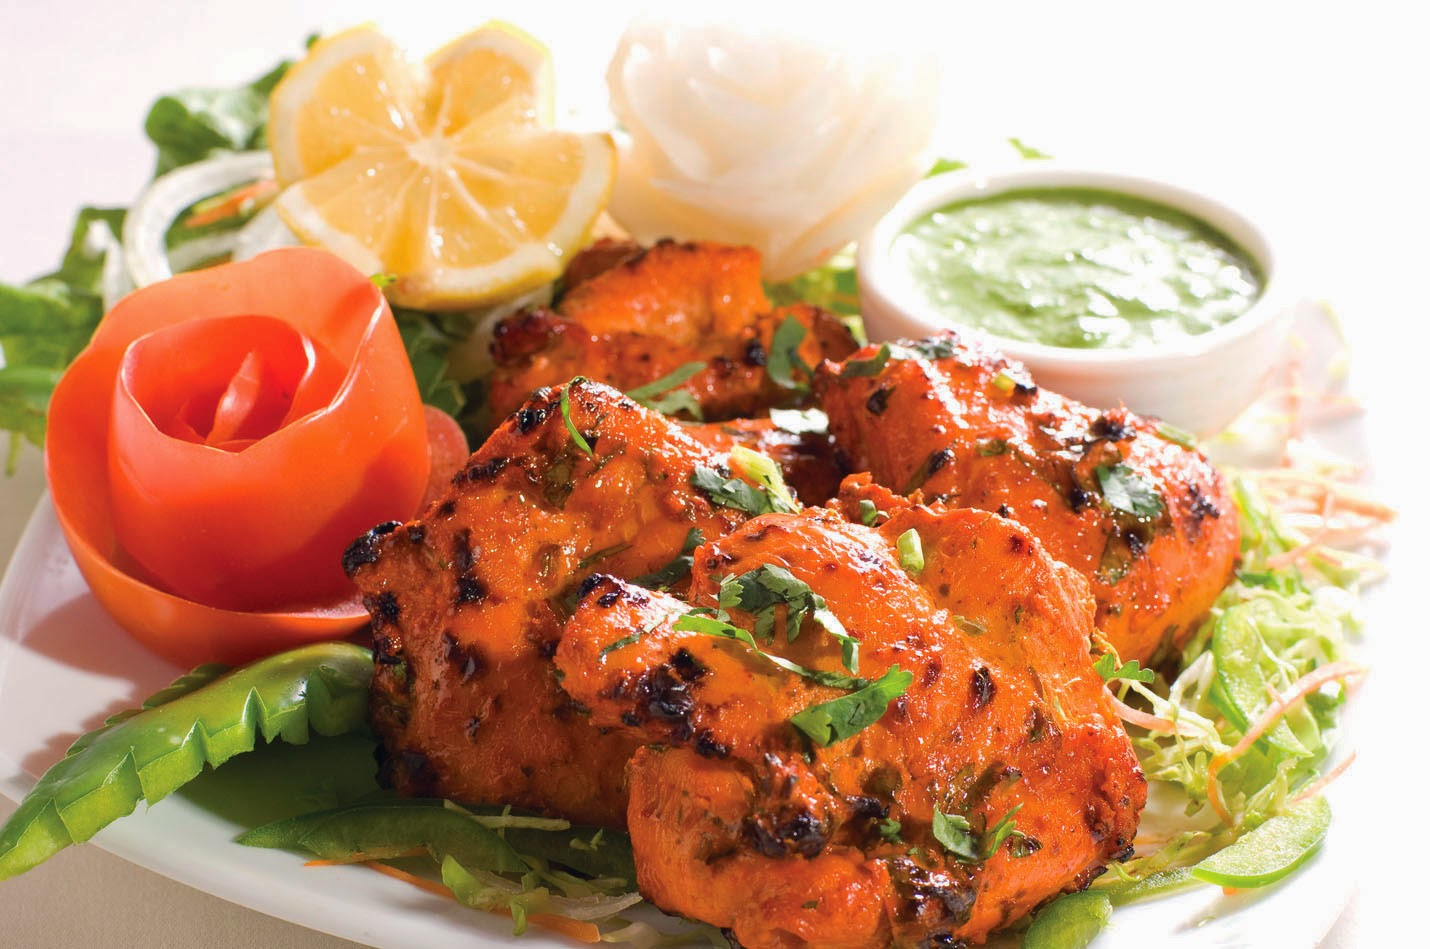 Family Indian Restaurant: Chicken tikka